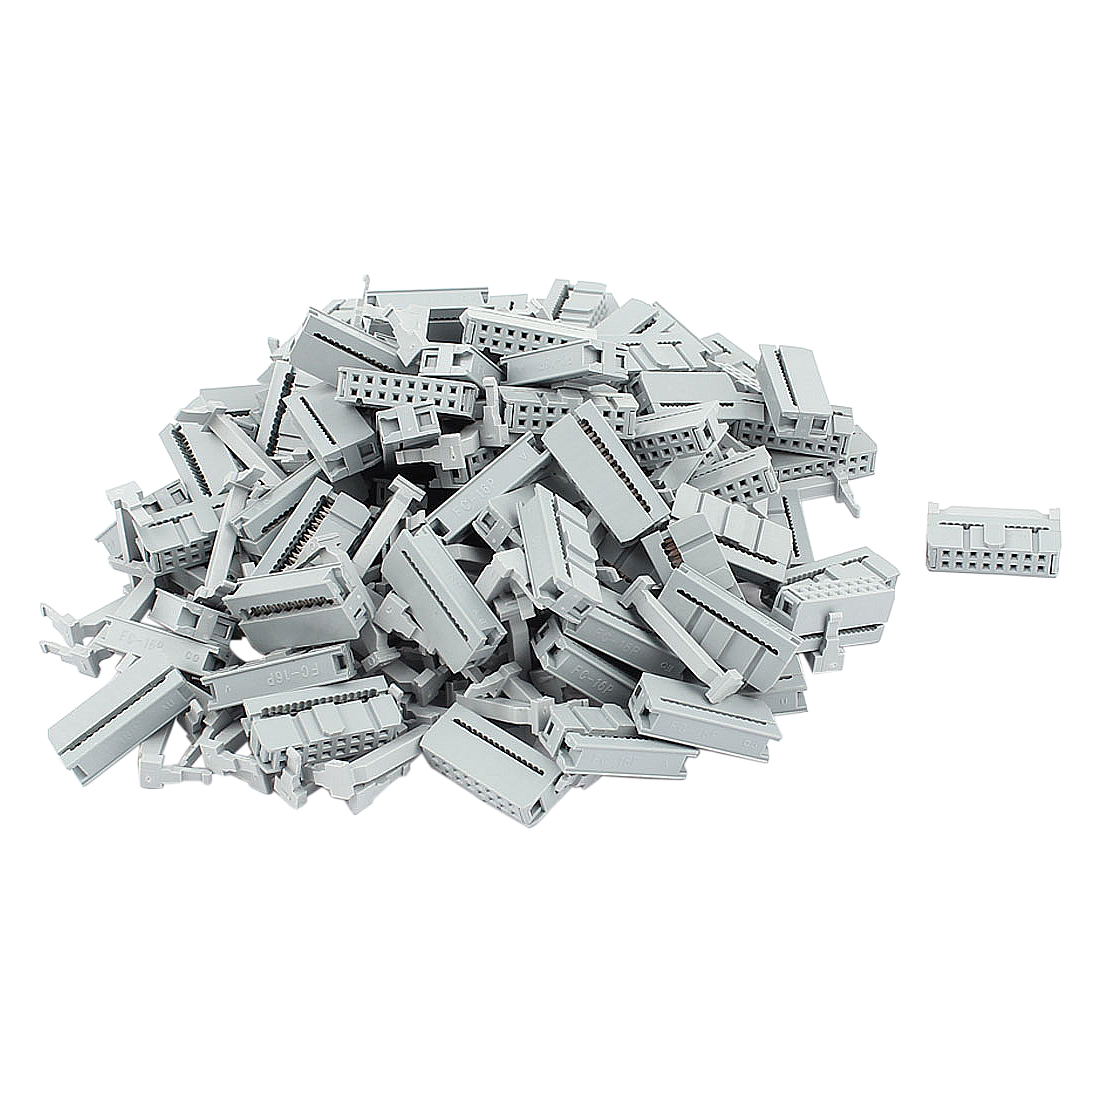 100 Pcs 2 Rows 16P FC-16P Flat Cable IDC Socket Connector w Strain Relief